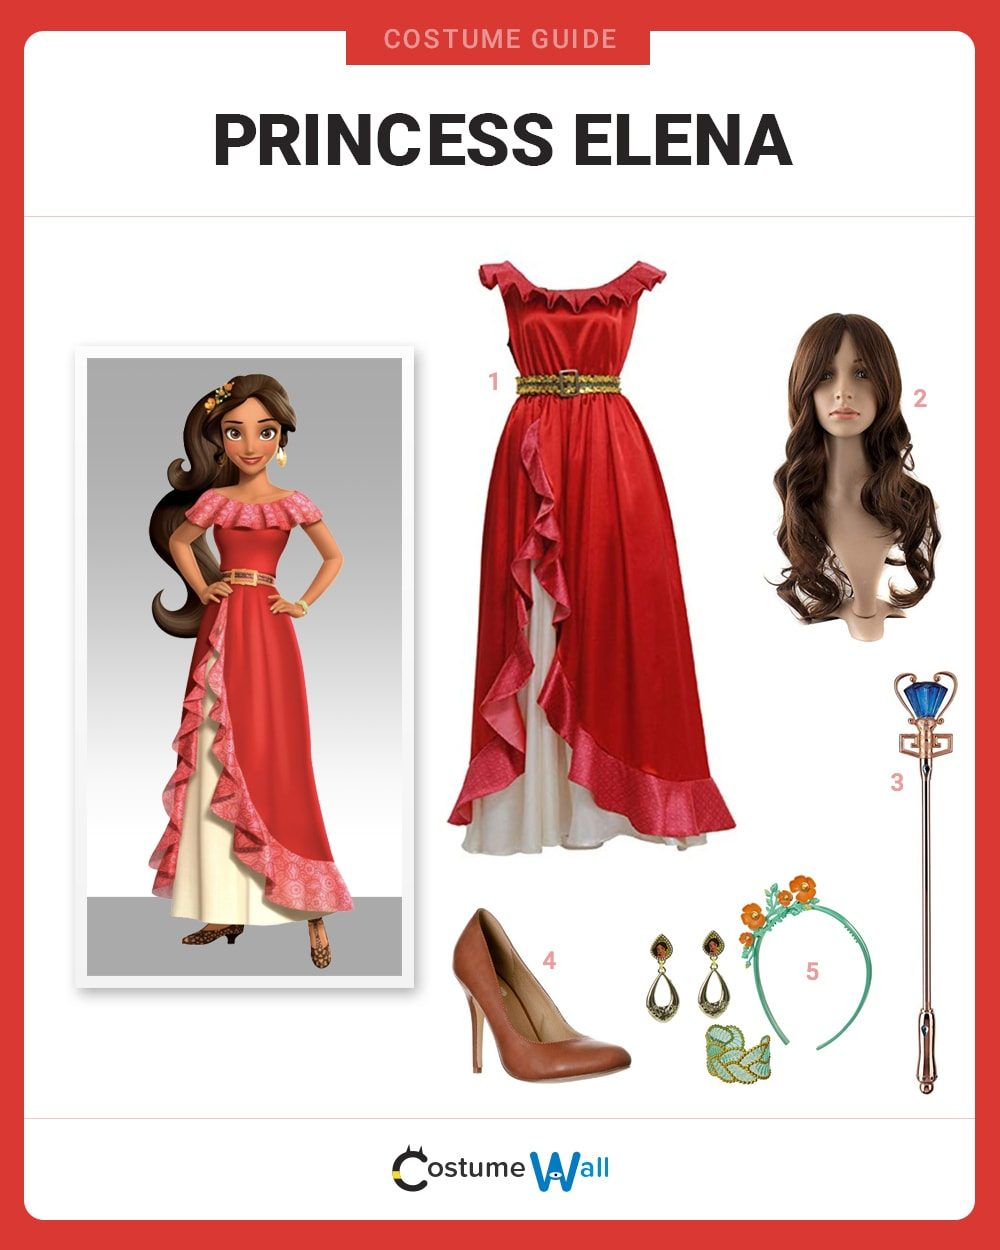 Princess Elena Costume Guide